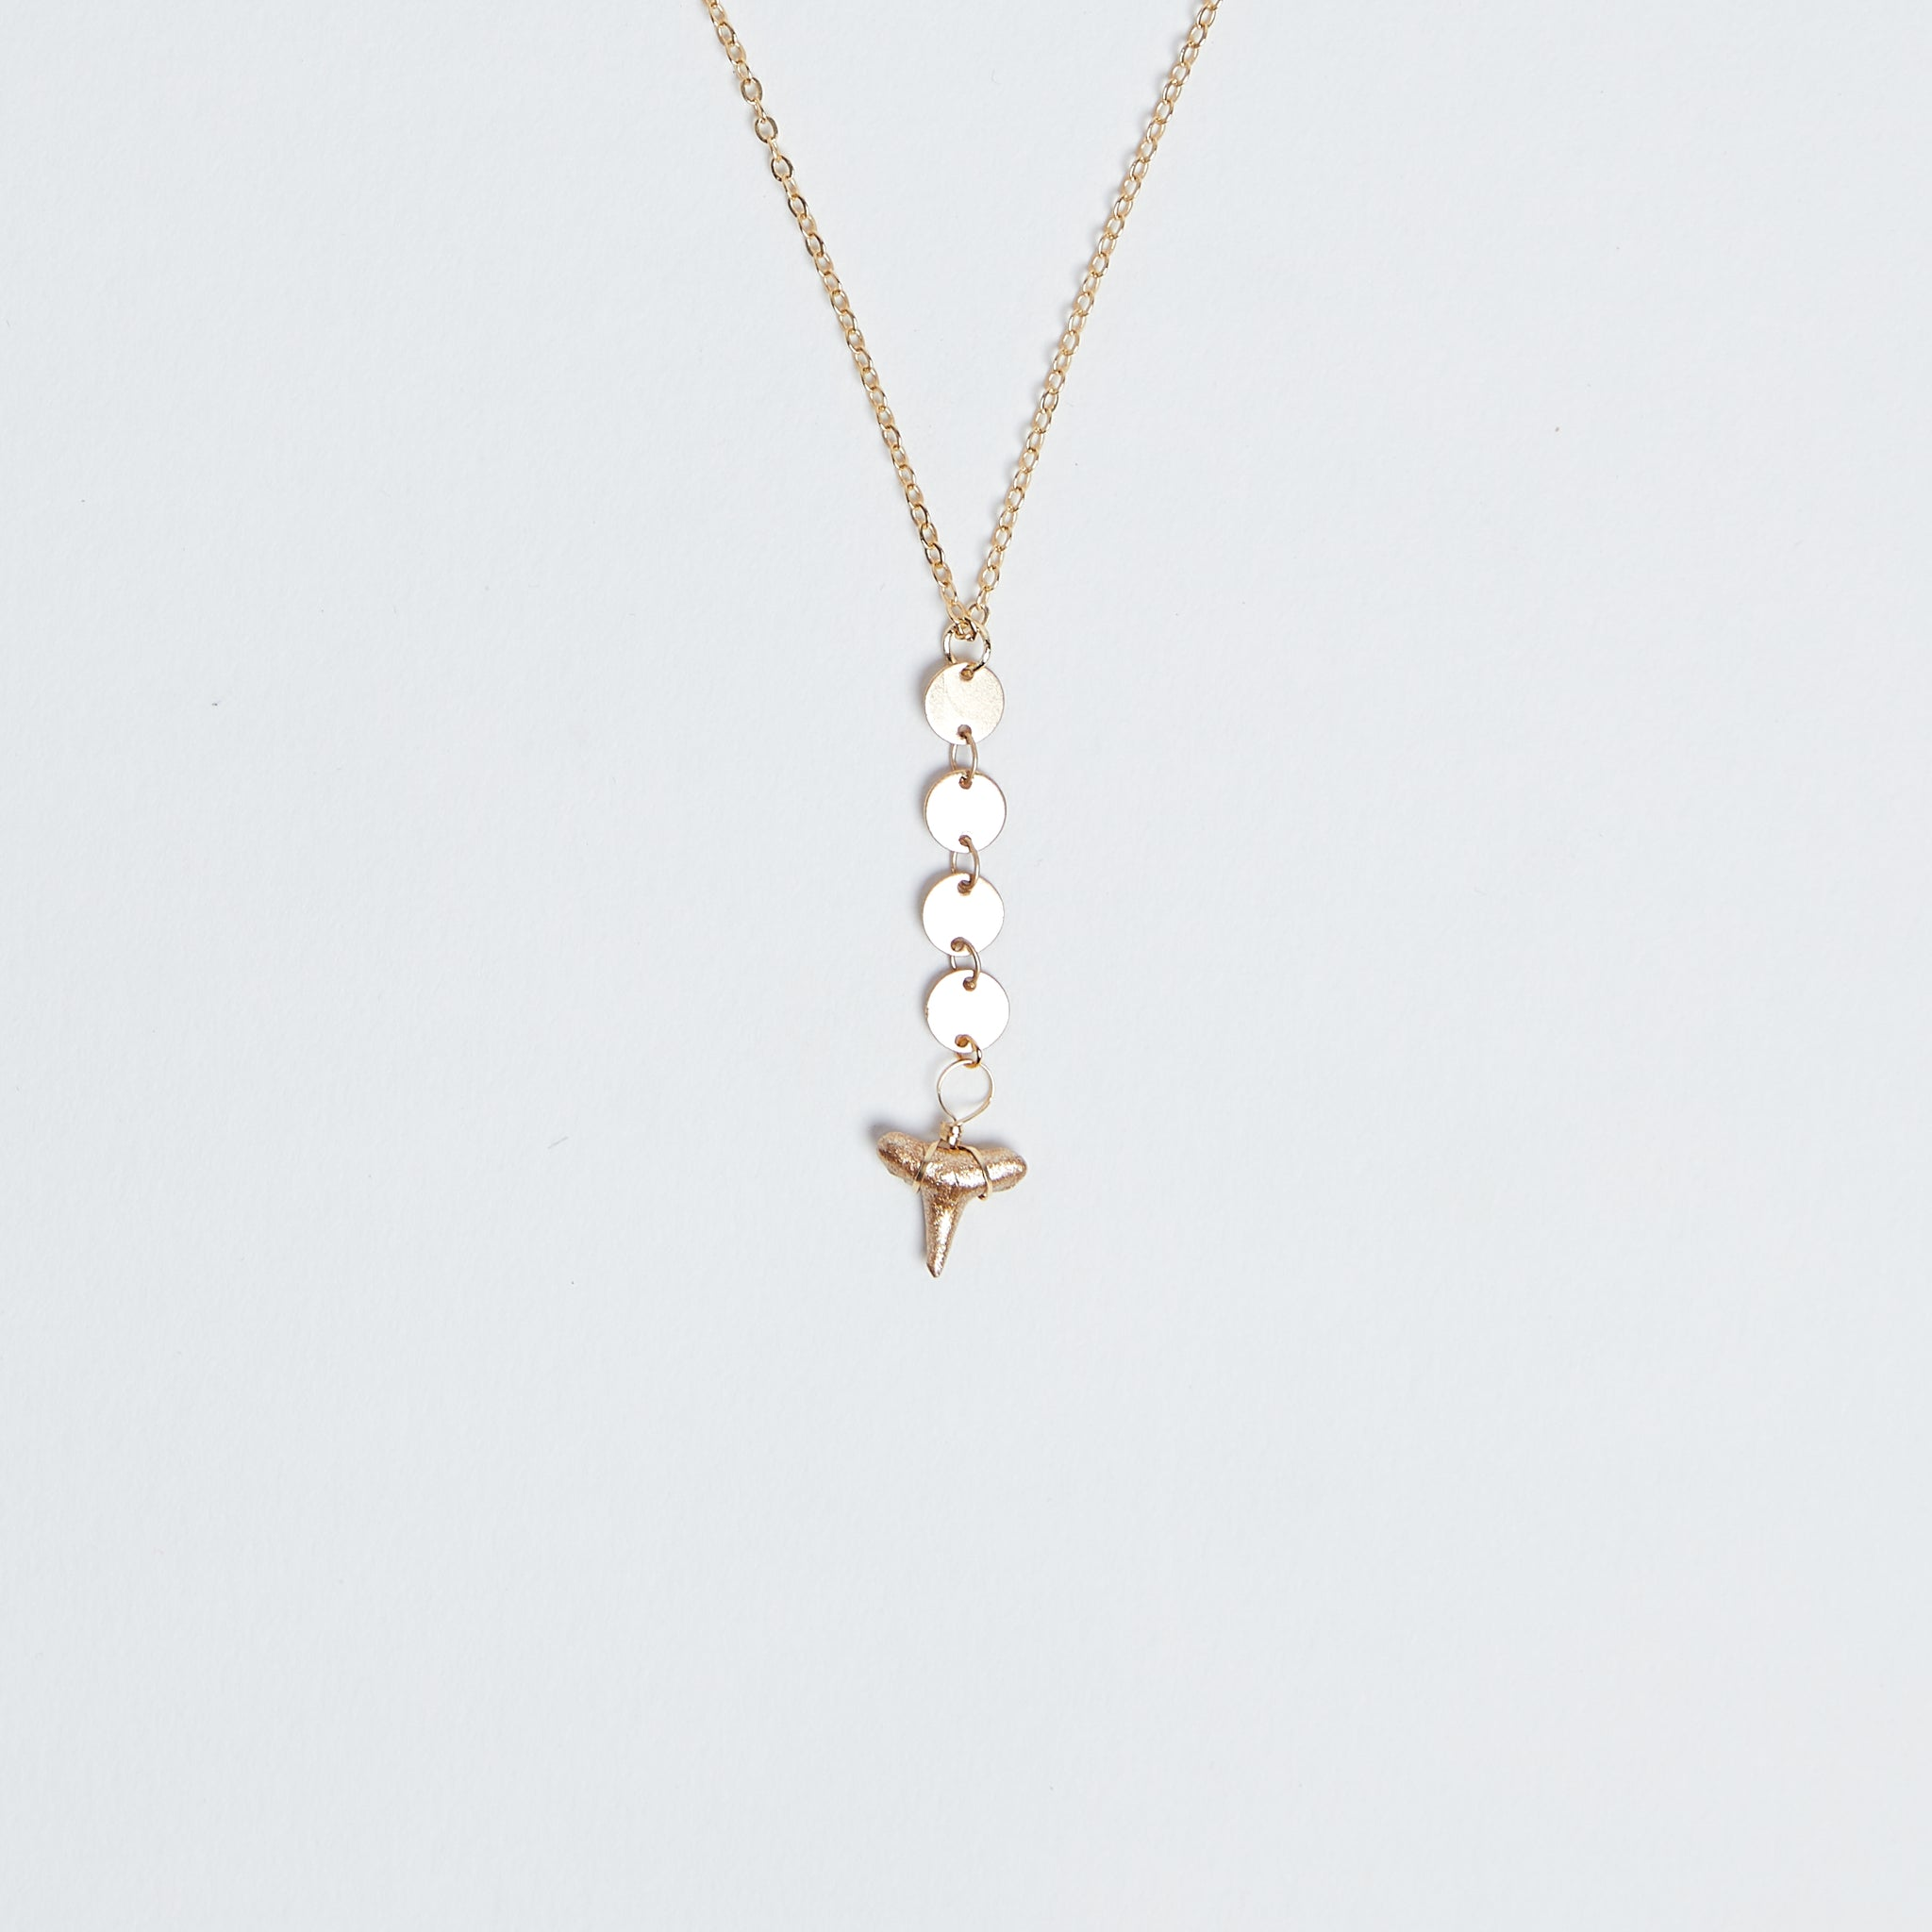 gold shark tooth y necklace on gold disc/medallion chain 14k gold filled shark tooth y necklace